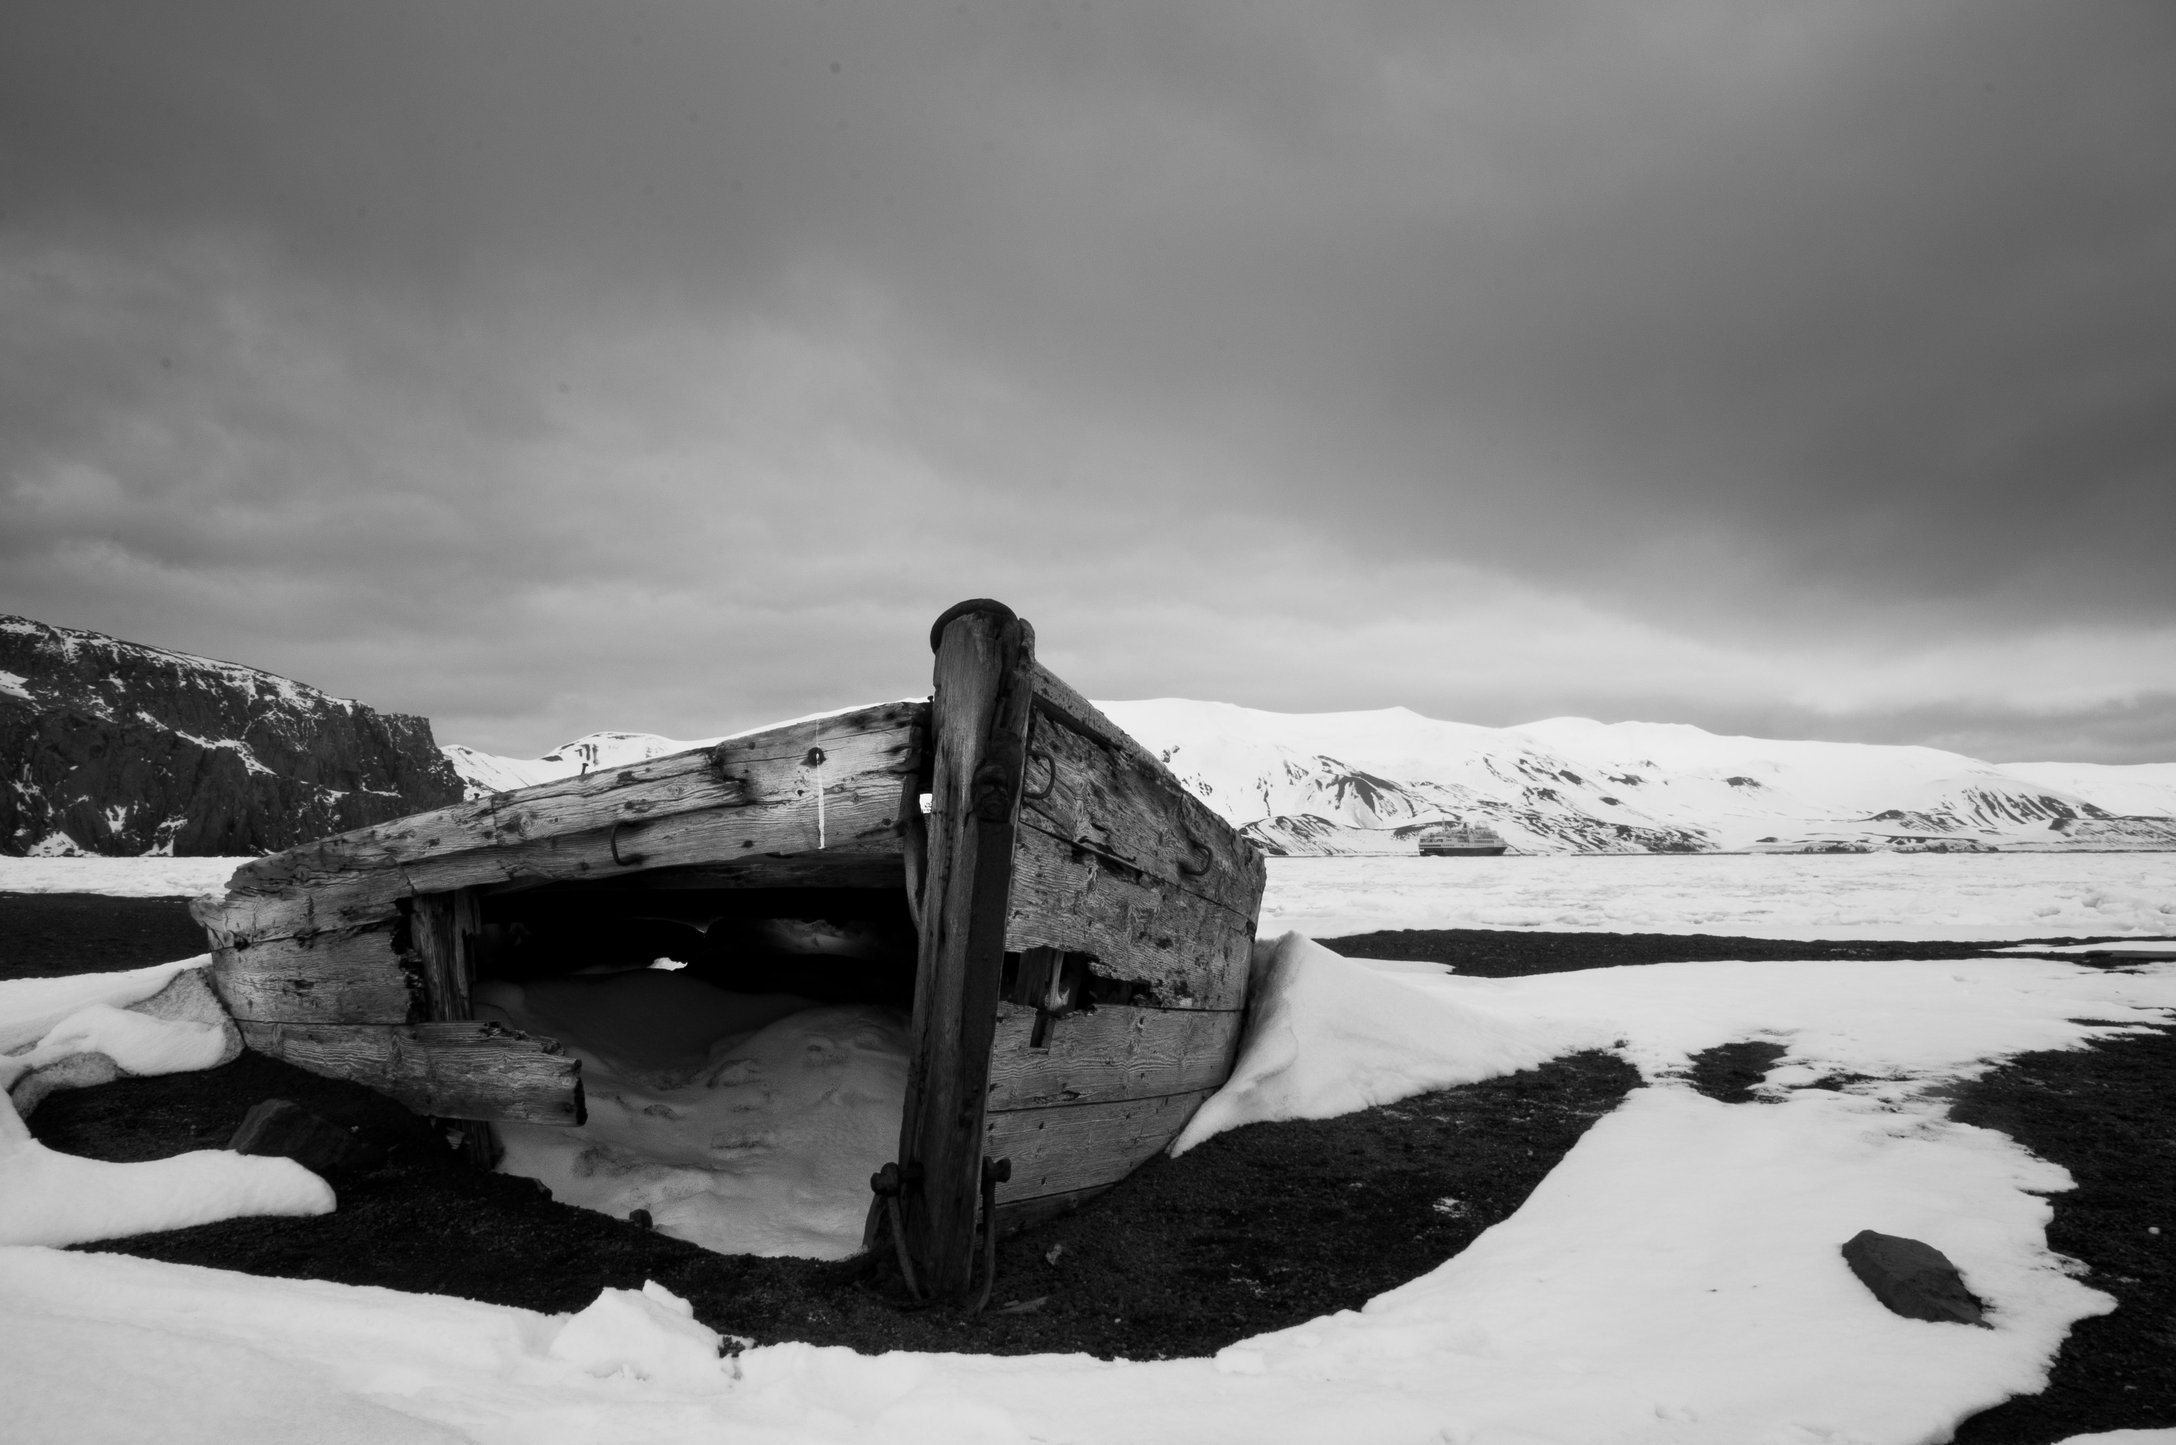 Water boat-Whalers Bay, Deception Island, Antarctica.jpg